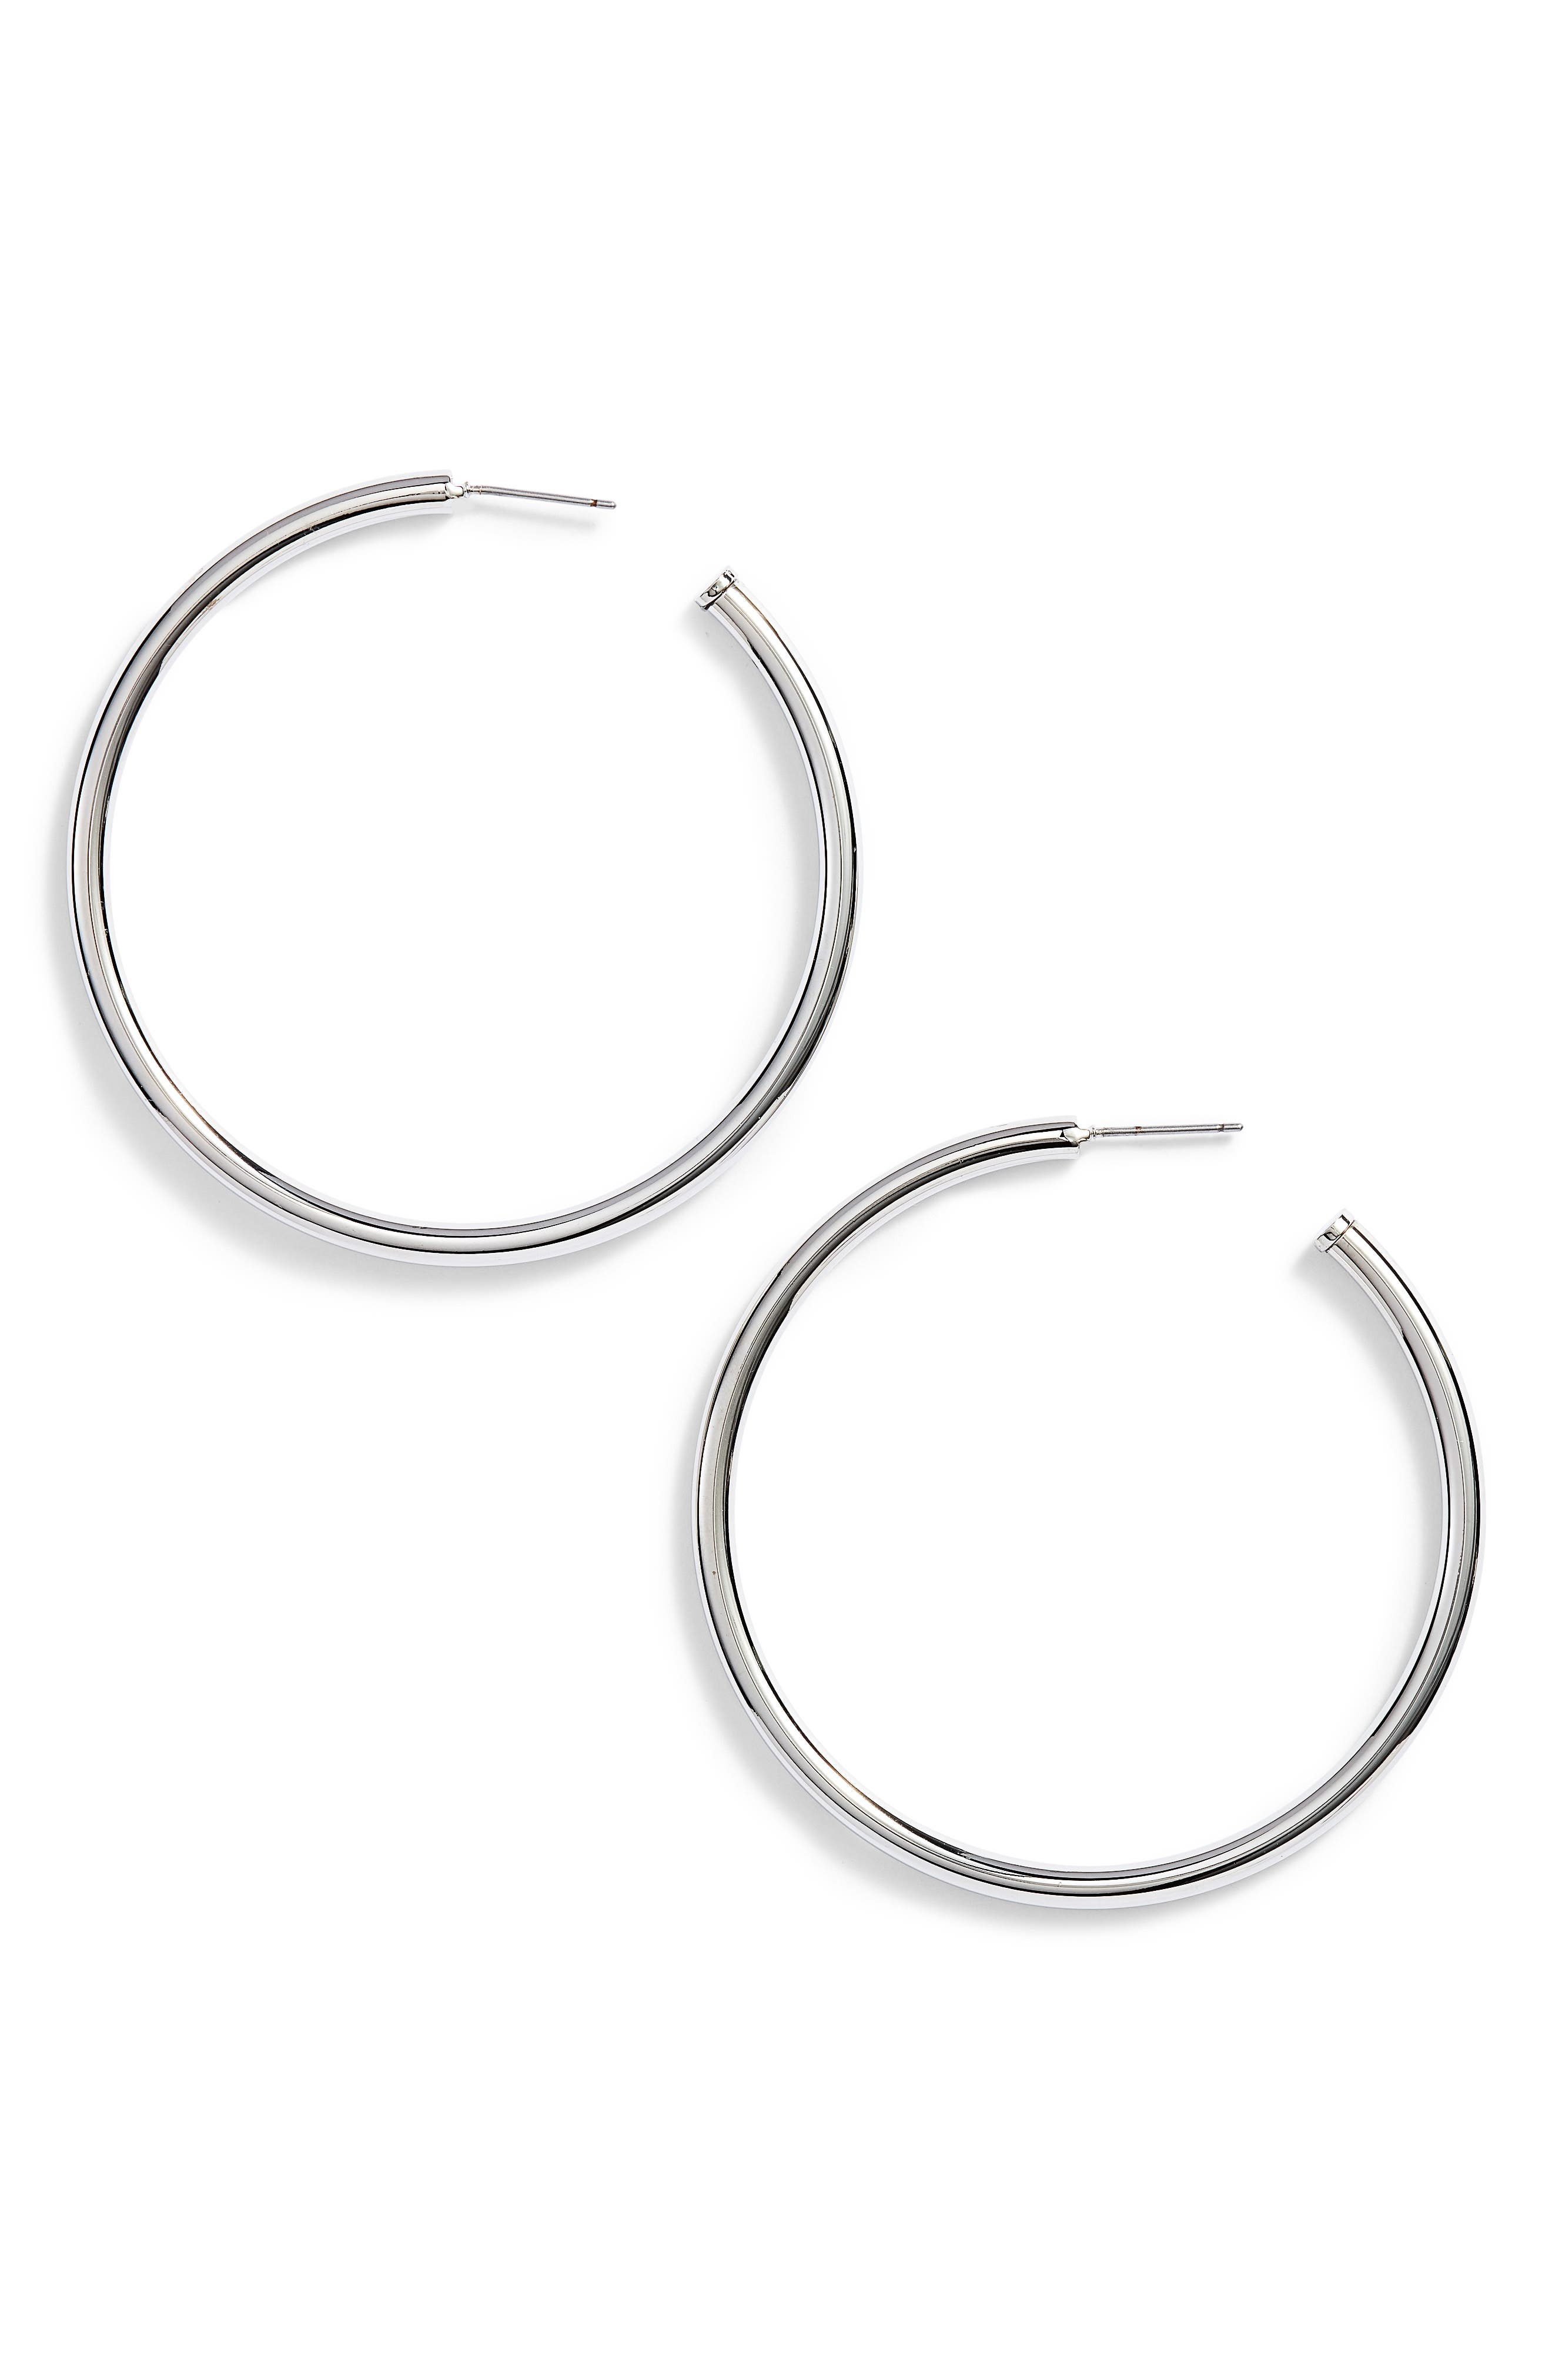 Rounded Tube Oversize Hoop Earrings,                             Main thumbnail 1, color,                             Silver